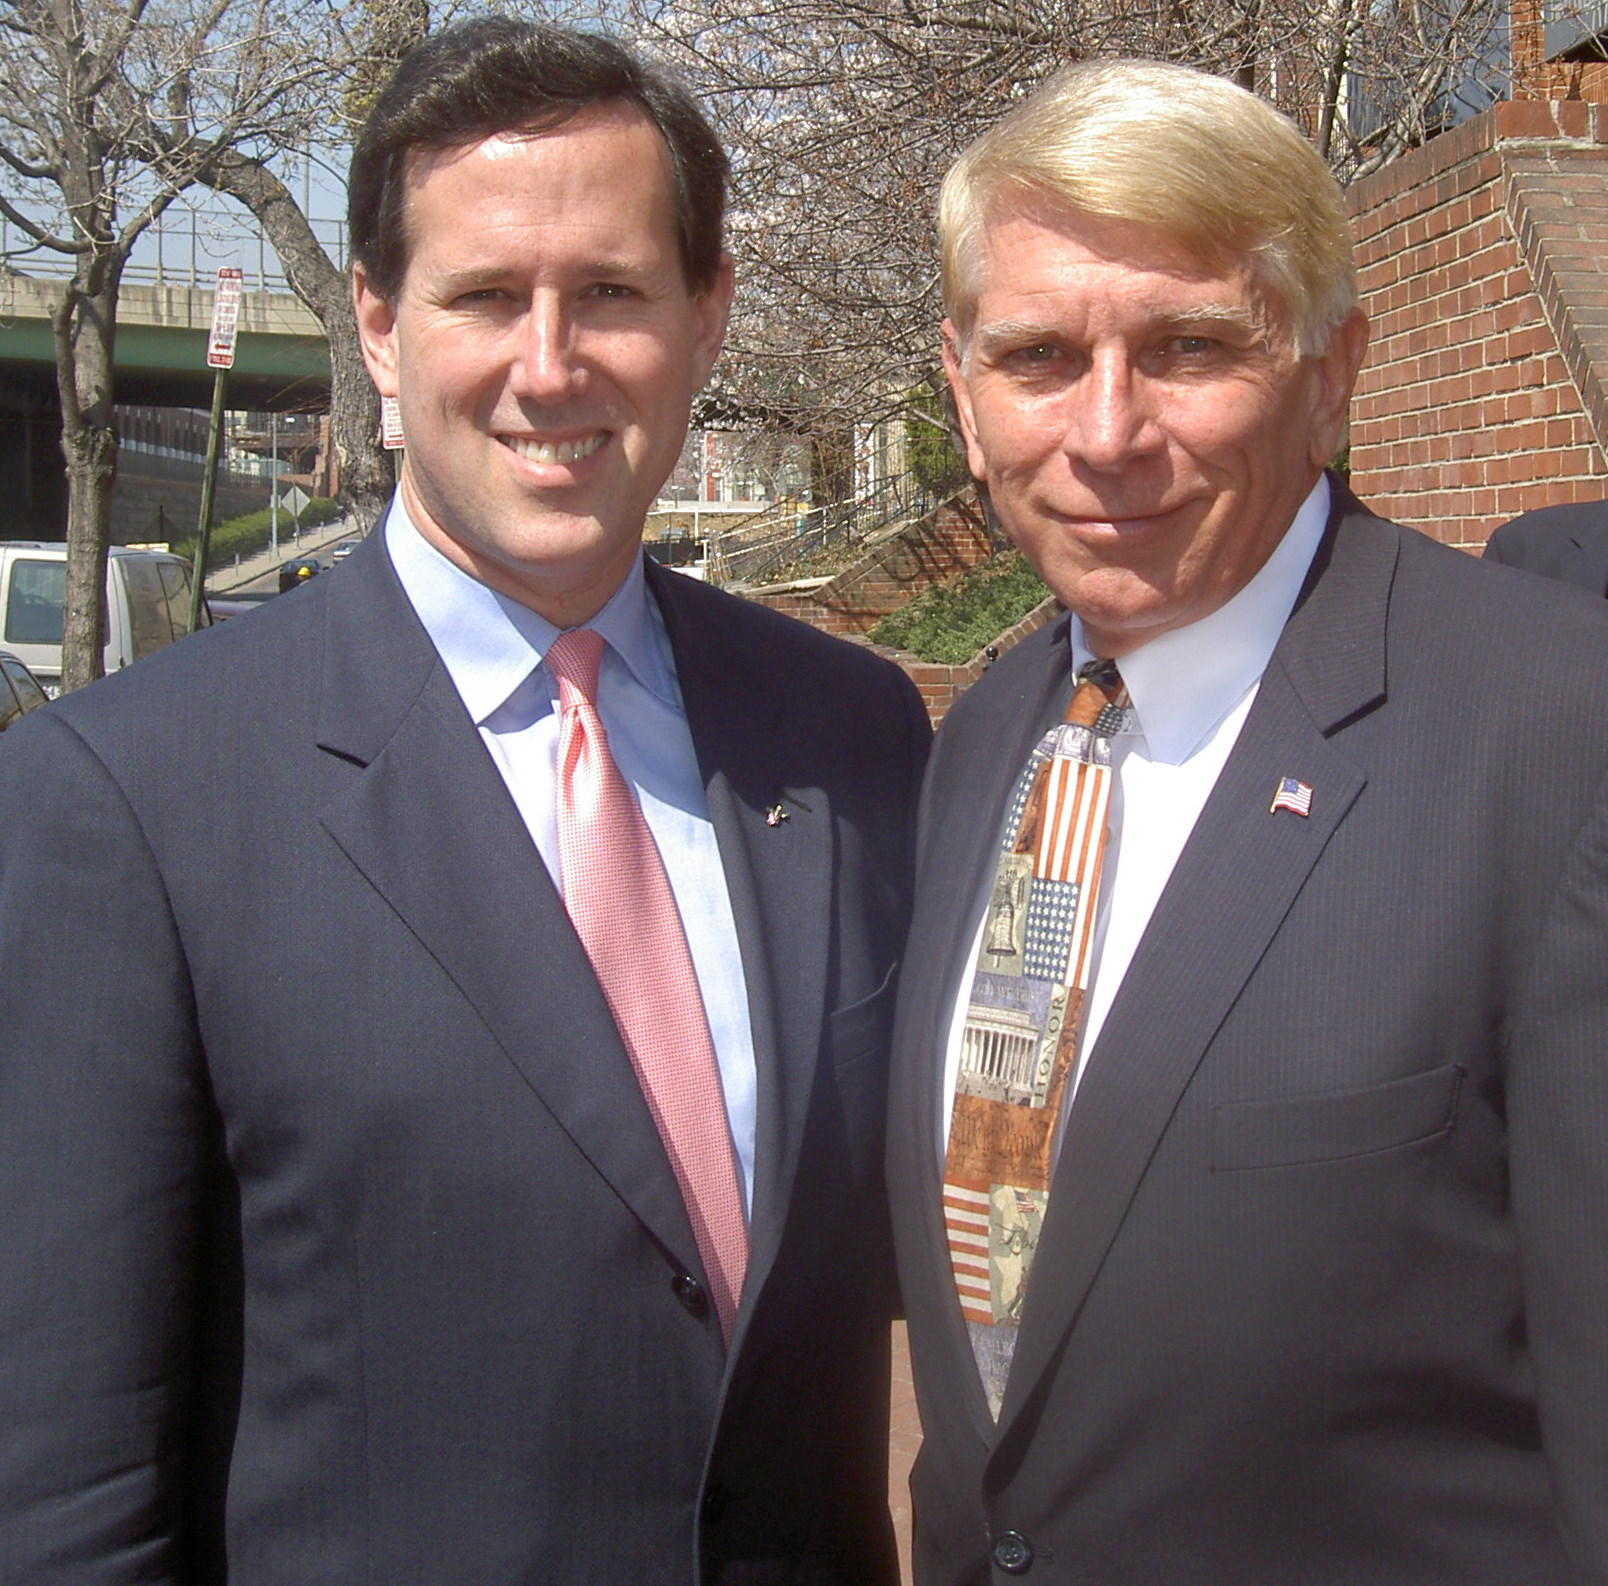 Rick Santorum and William J Murray